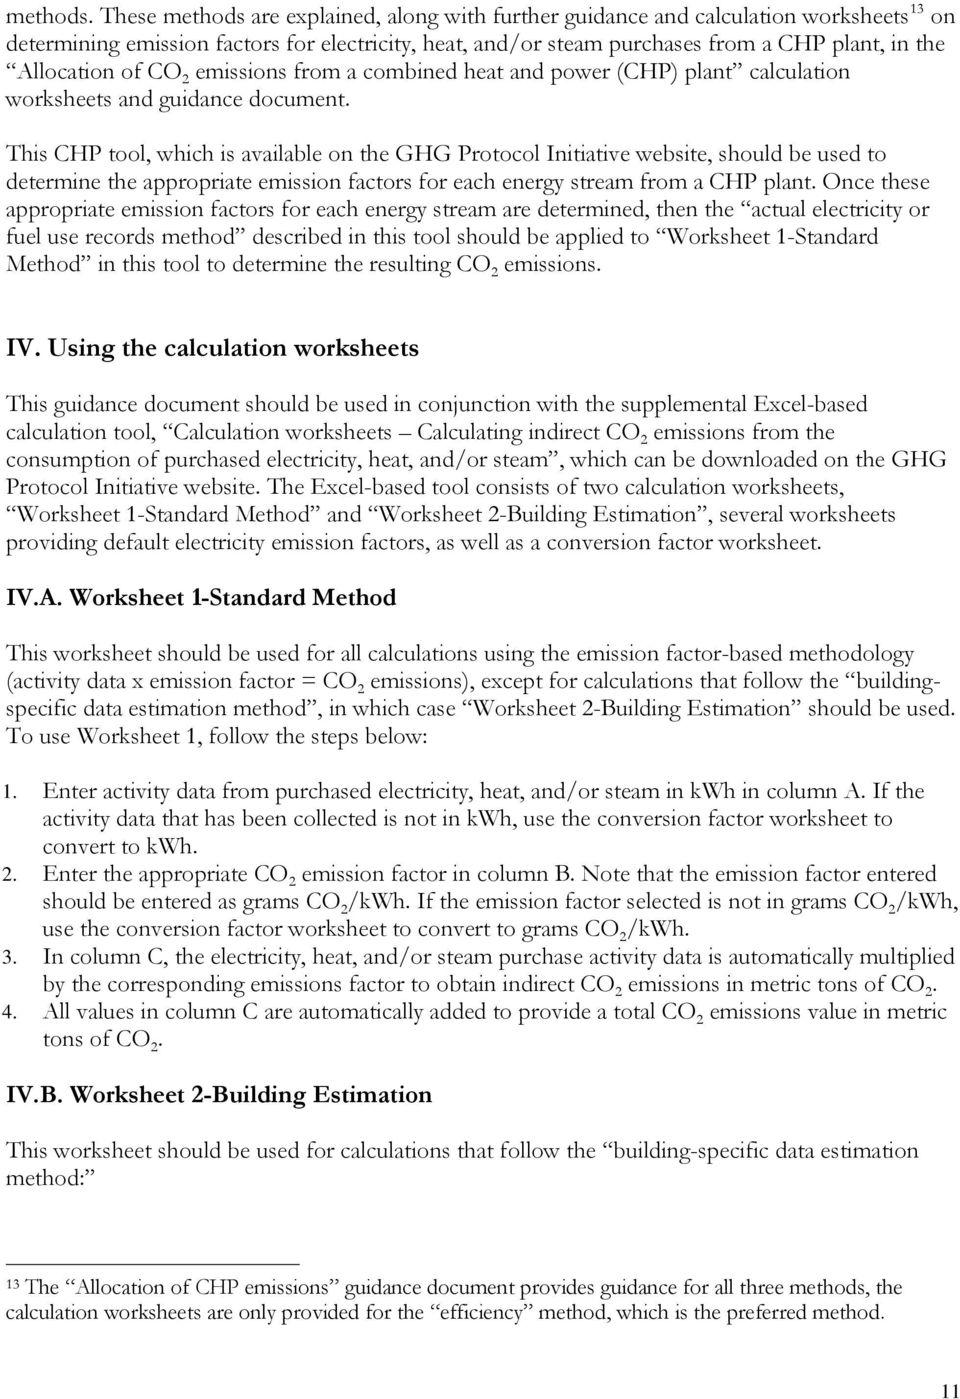 Allocation of CO 2 emissions from a combined heat and power (CHP) plant calculation worksheets and guidance document.